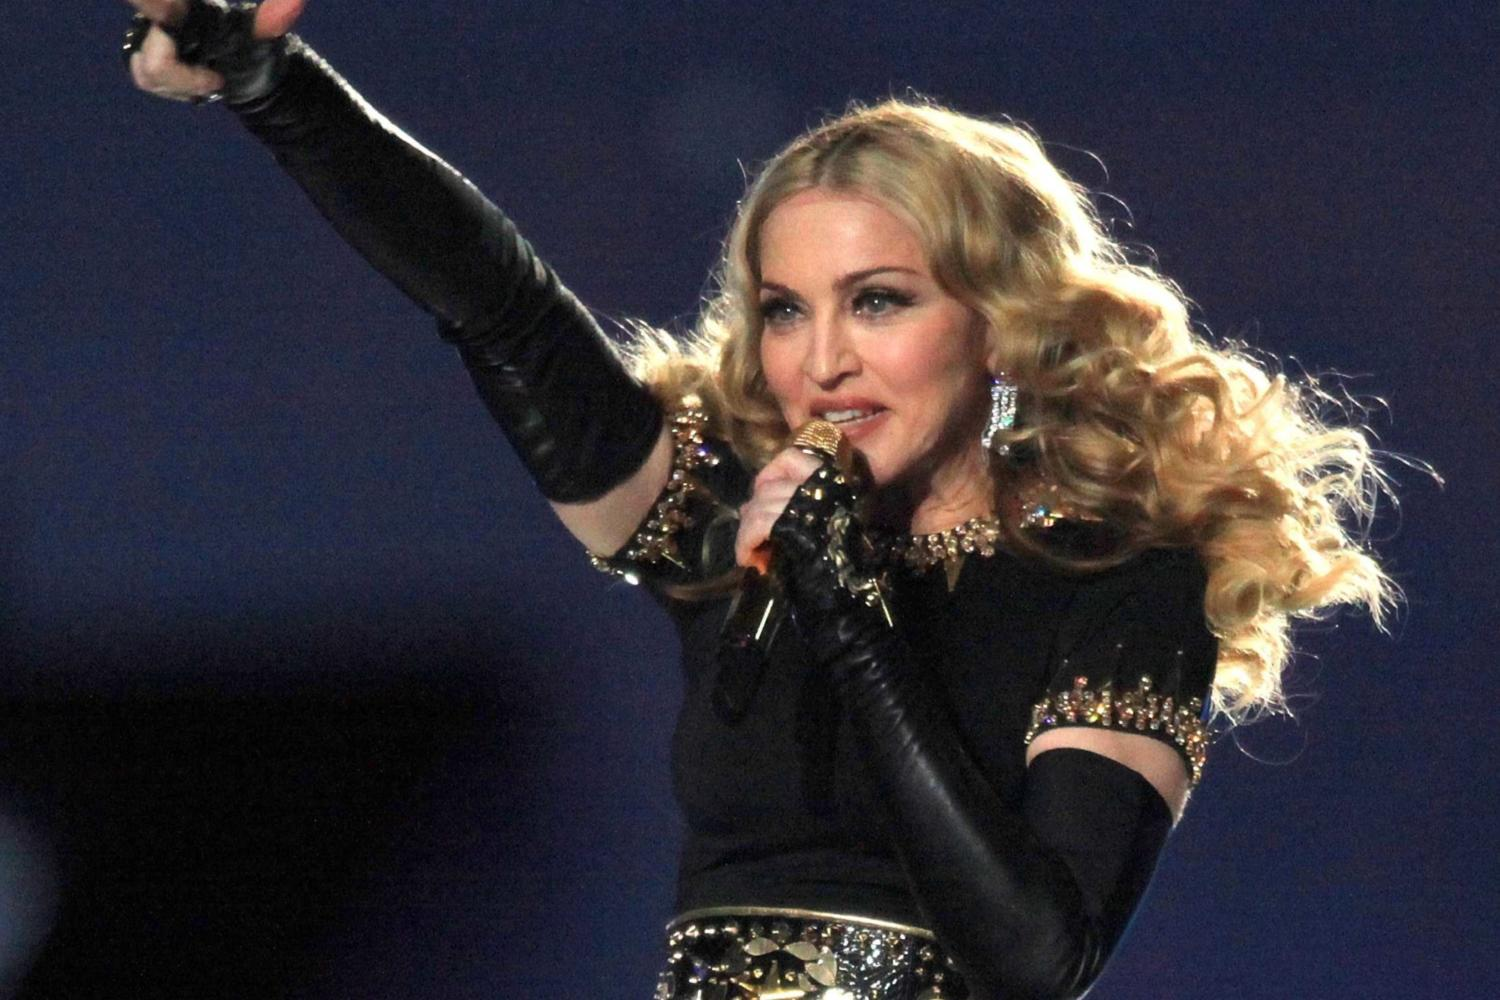 Madonna releases six songs from new album 'Rebel Heart'